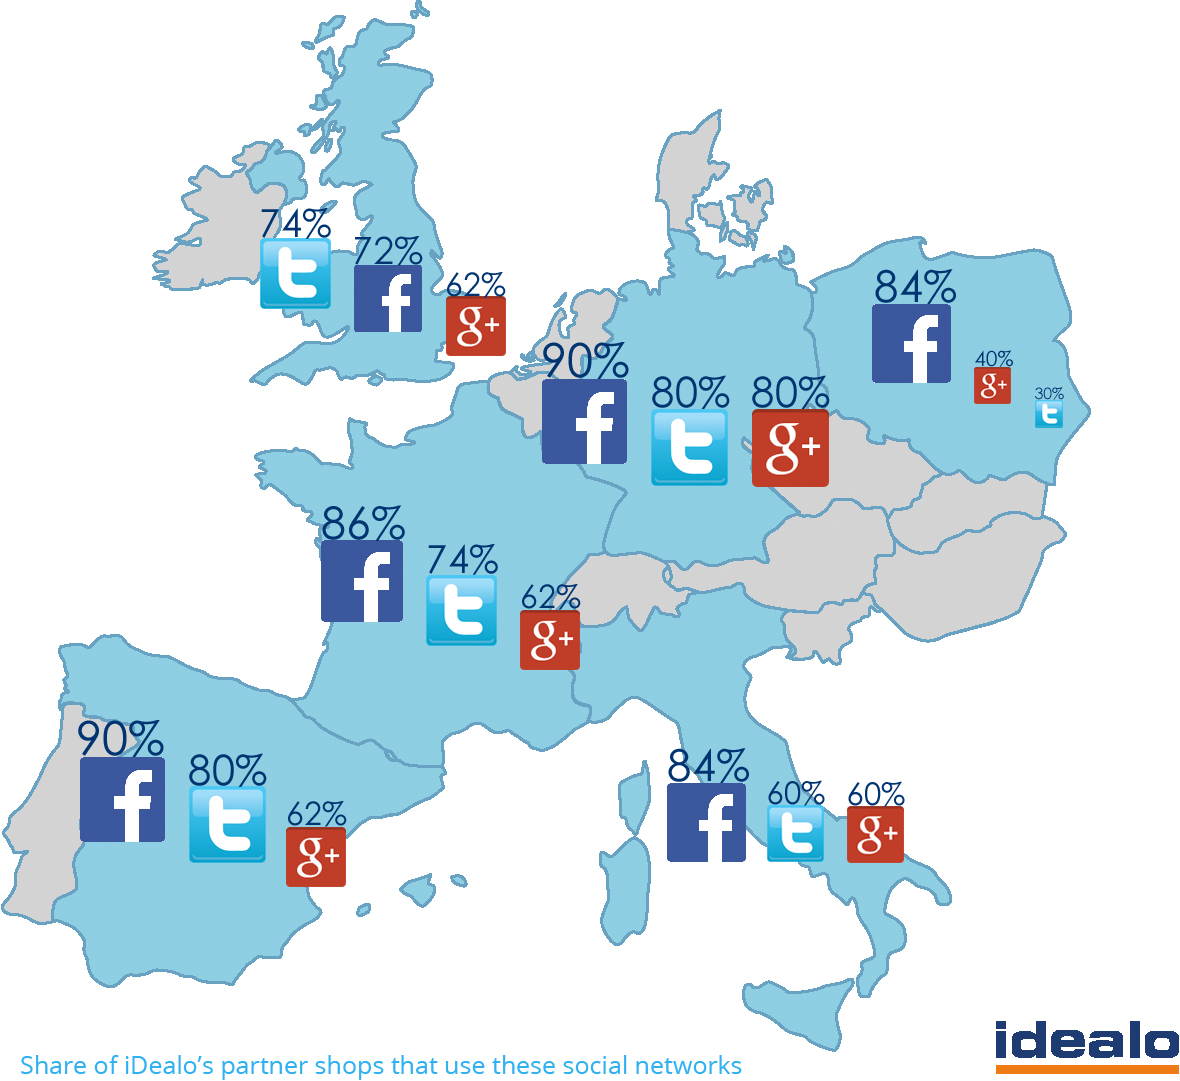 Ecommerce in Europe: social media